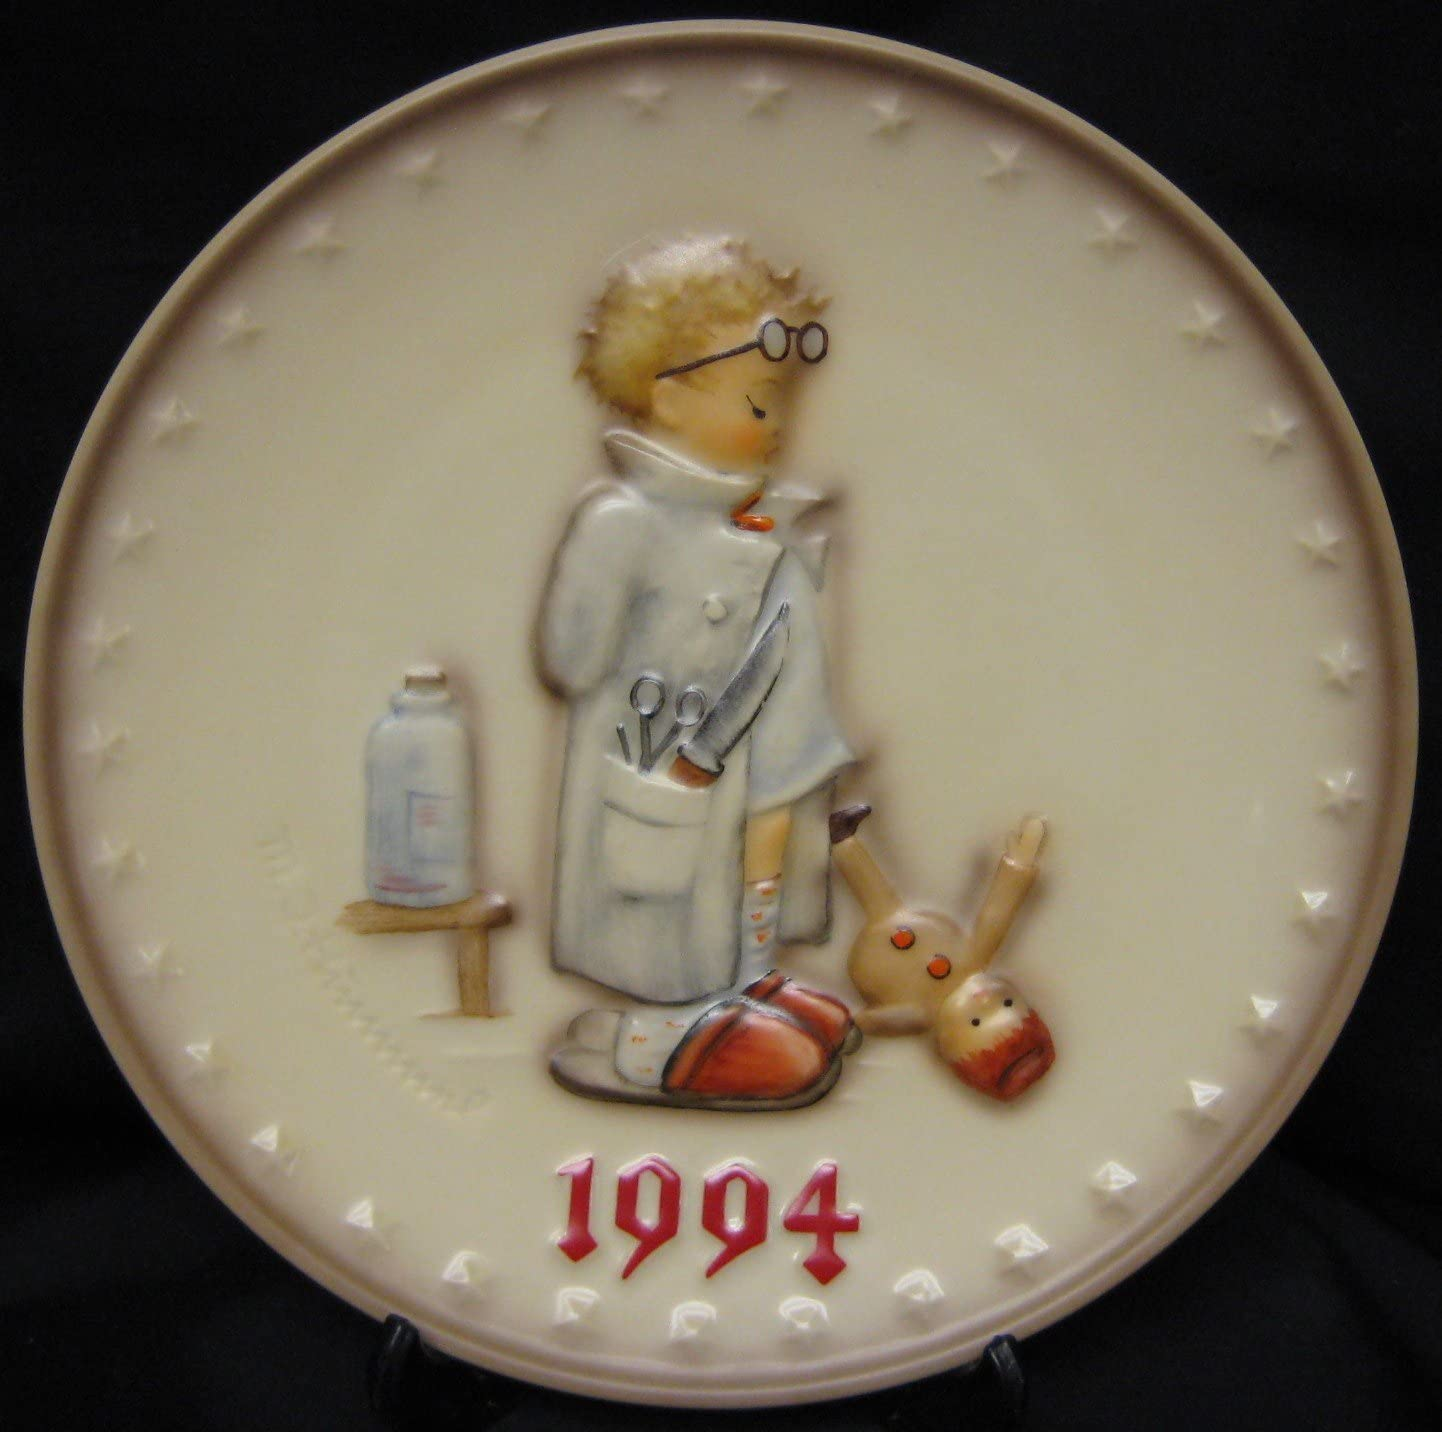 M. I. Hummel Import Annual Plate 24th Max 78% OFF Edition Goebel - 1994